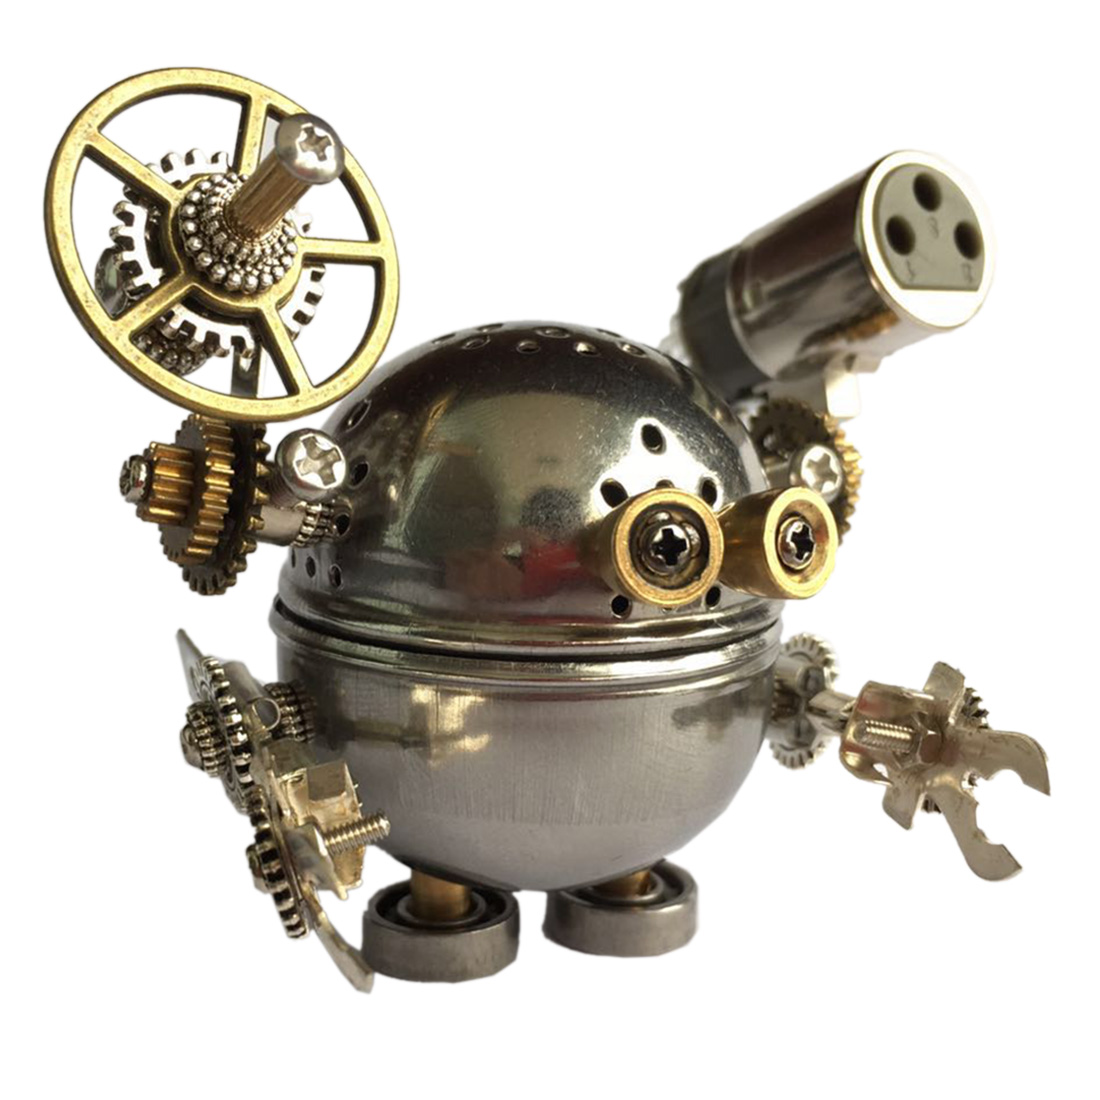 Creative Gift DIY Assembled Model Kit Metal Cartoon Figure Model Ornaments Home Office Decor Art Educational